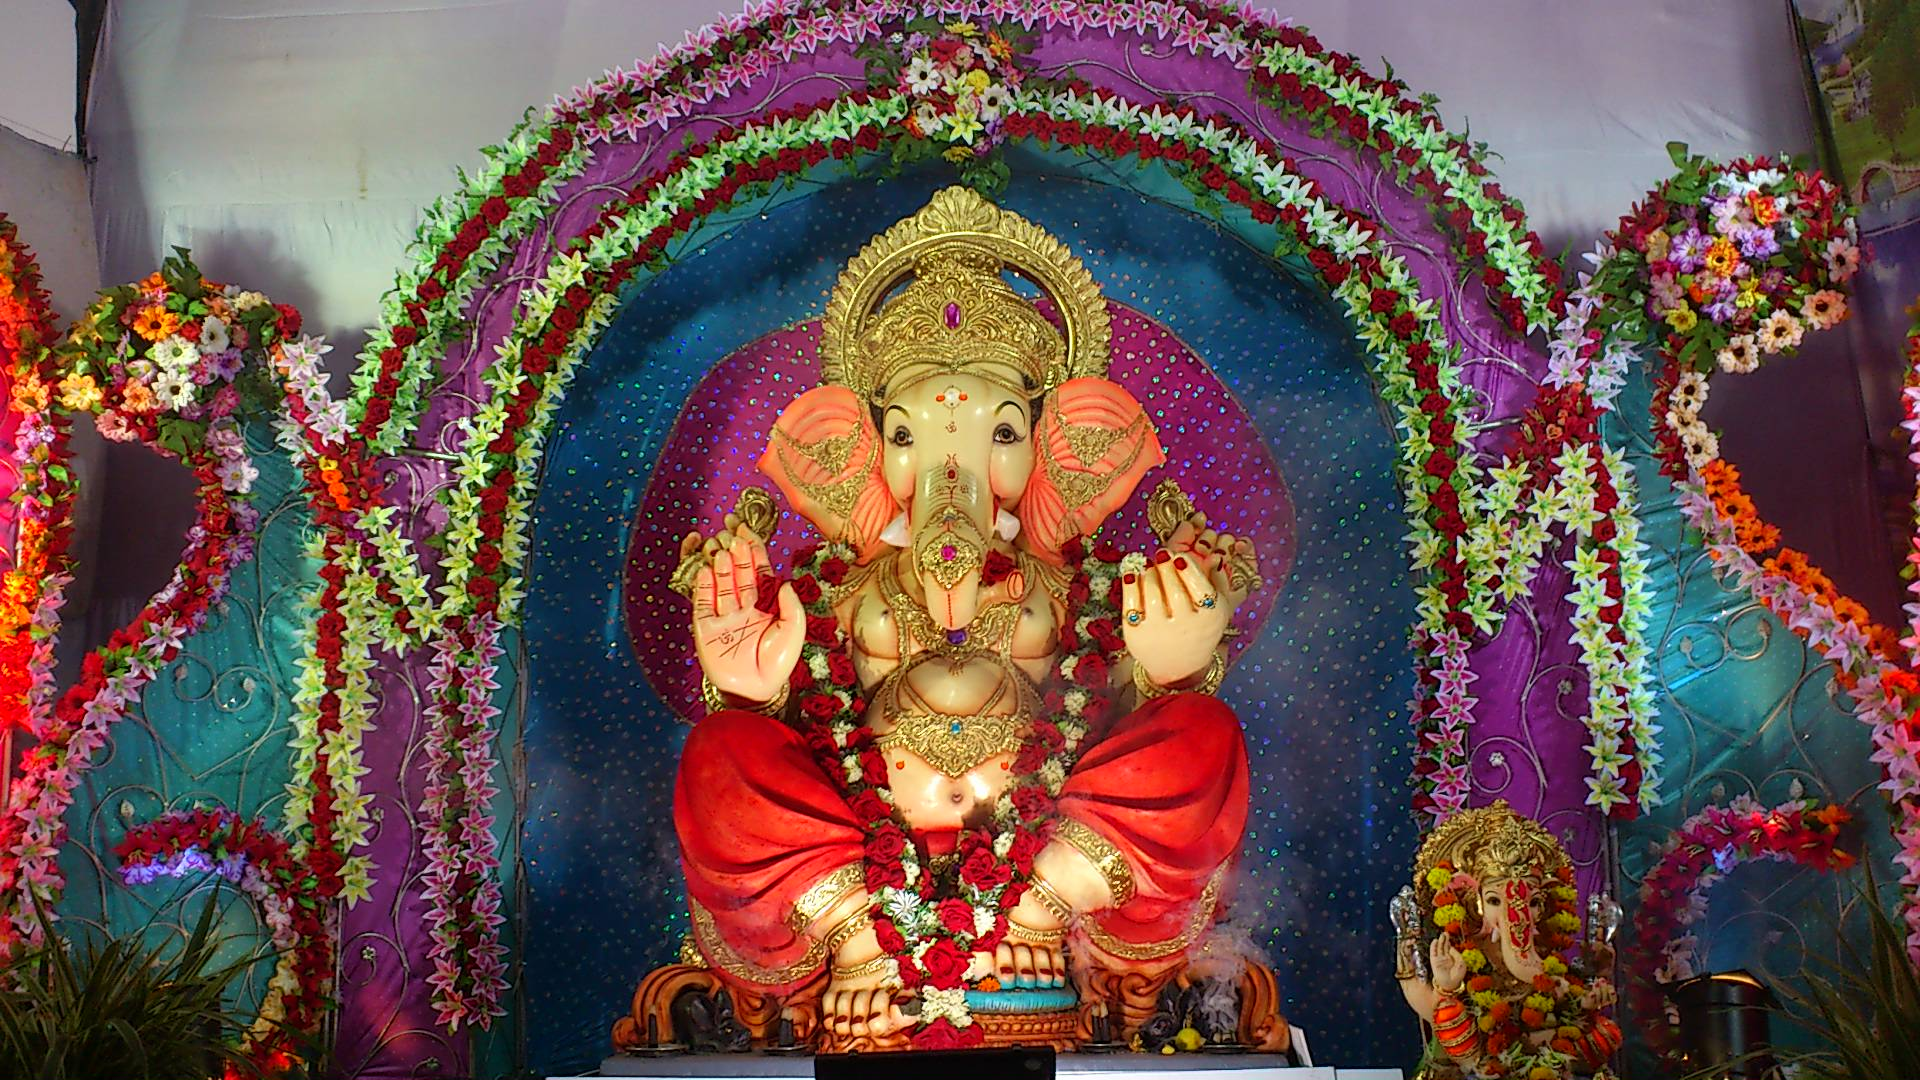 essay on religious festivals in india \religious festivals in christianity and hinduism\ the concept of religion has many different definitions, particularly amongst different societies and cultures.